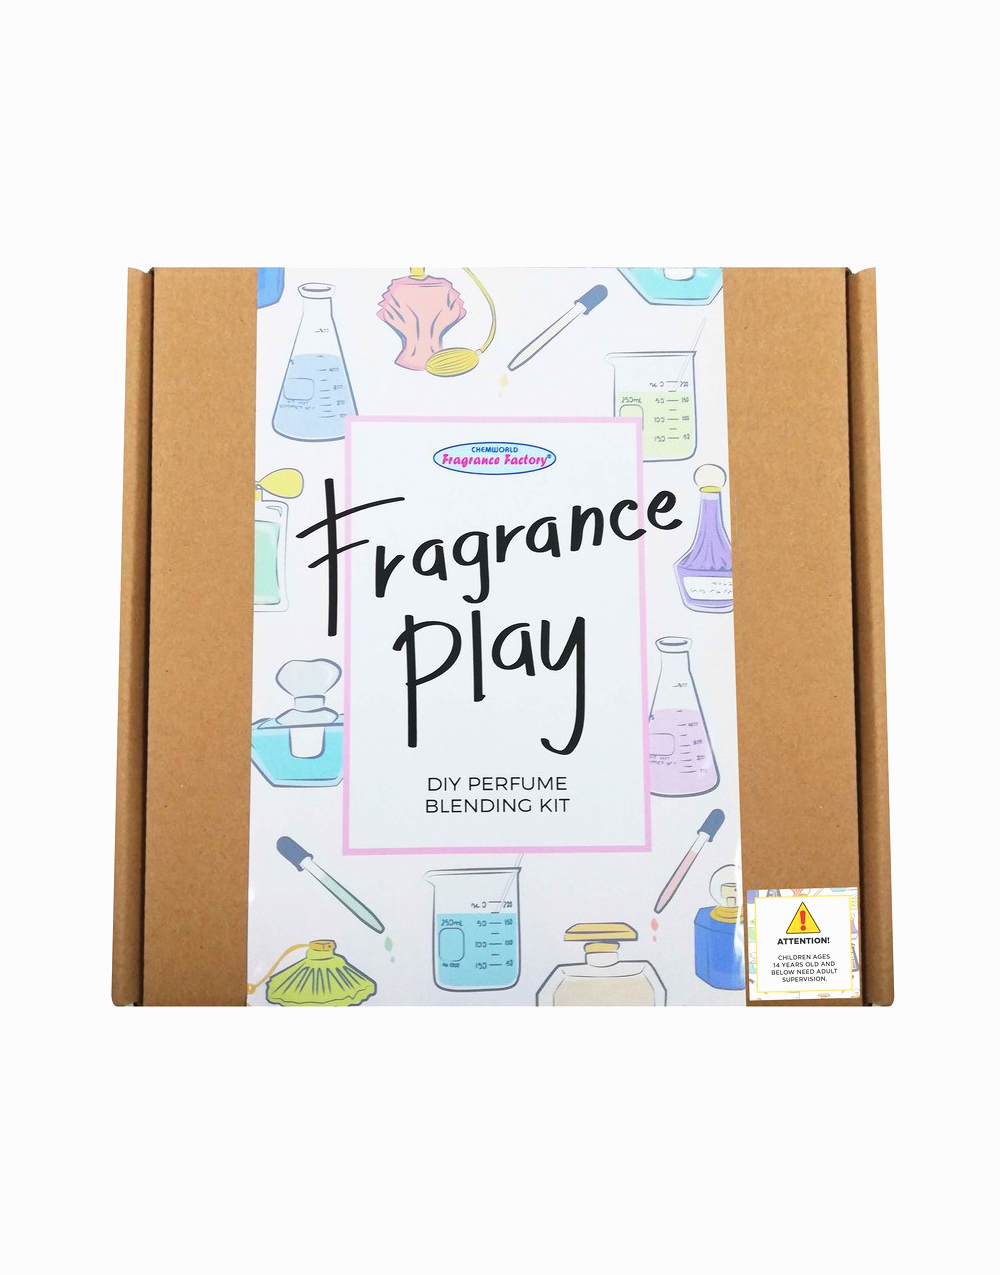 Fragrance Play Do-It-Yourself Blending Kit by Chemworld Fragrance Factory